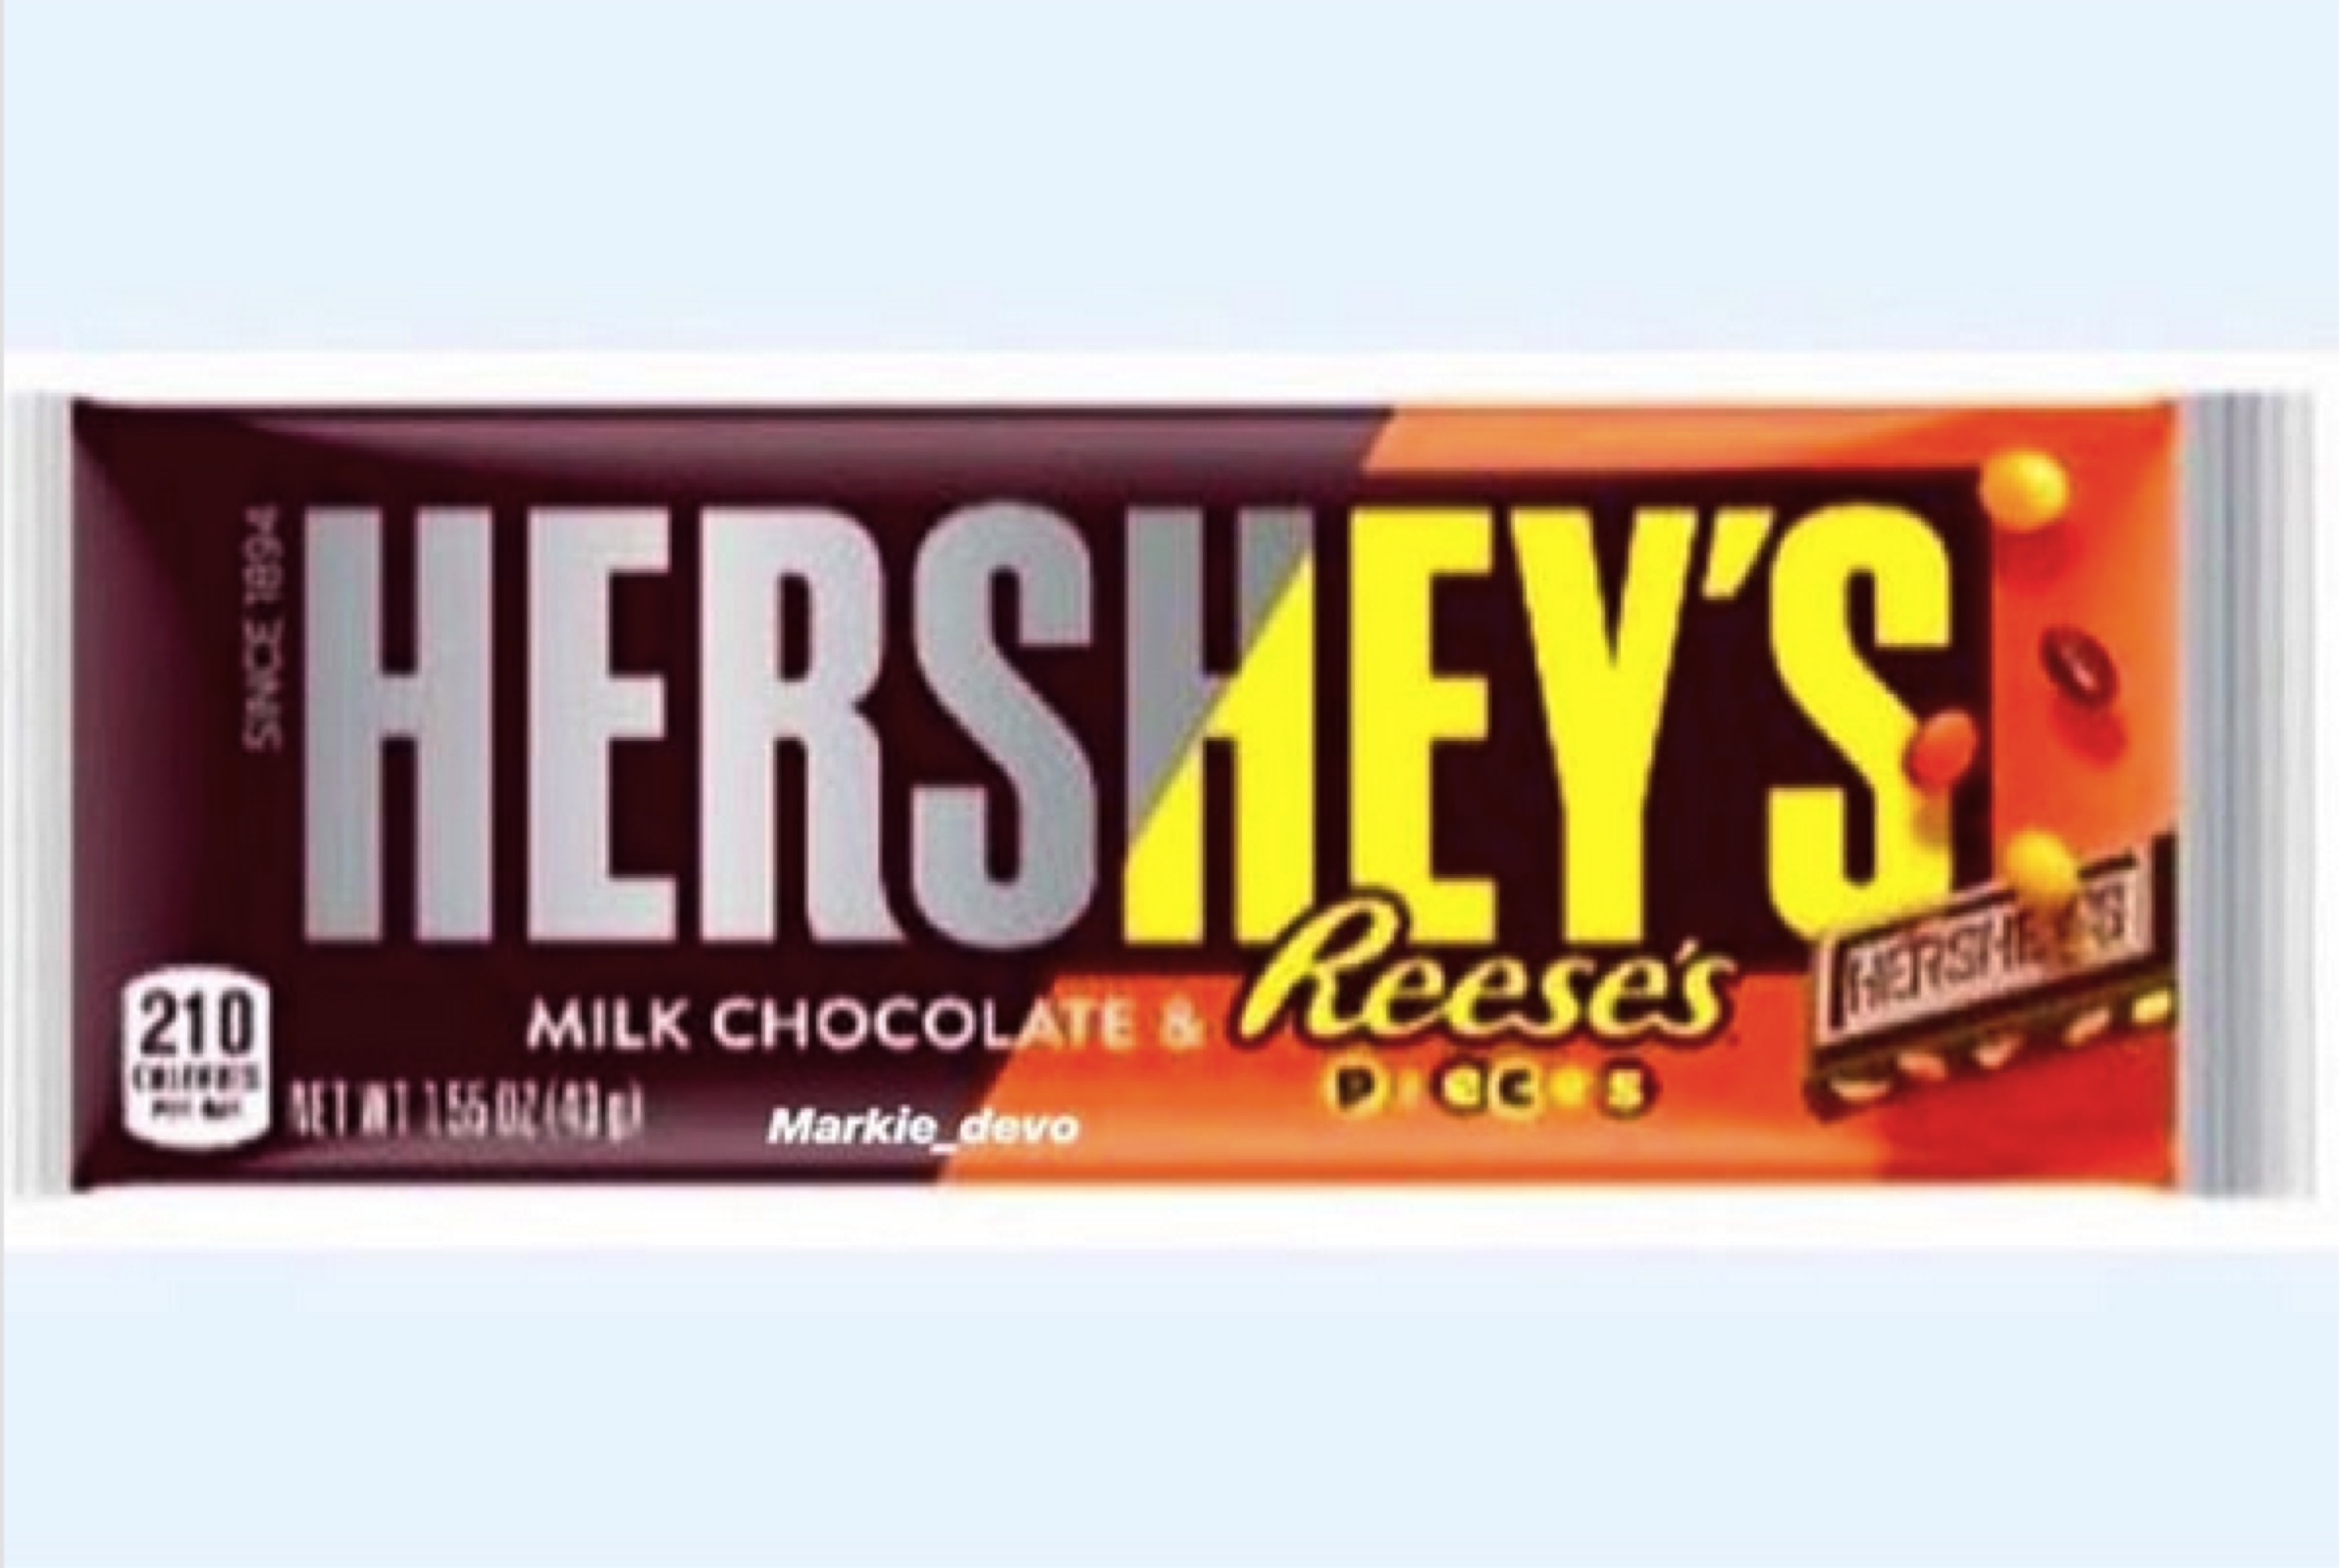 Hersheys Milk Chocolate And Reeses Pieces Land Of New